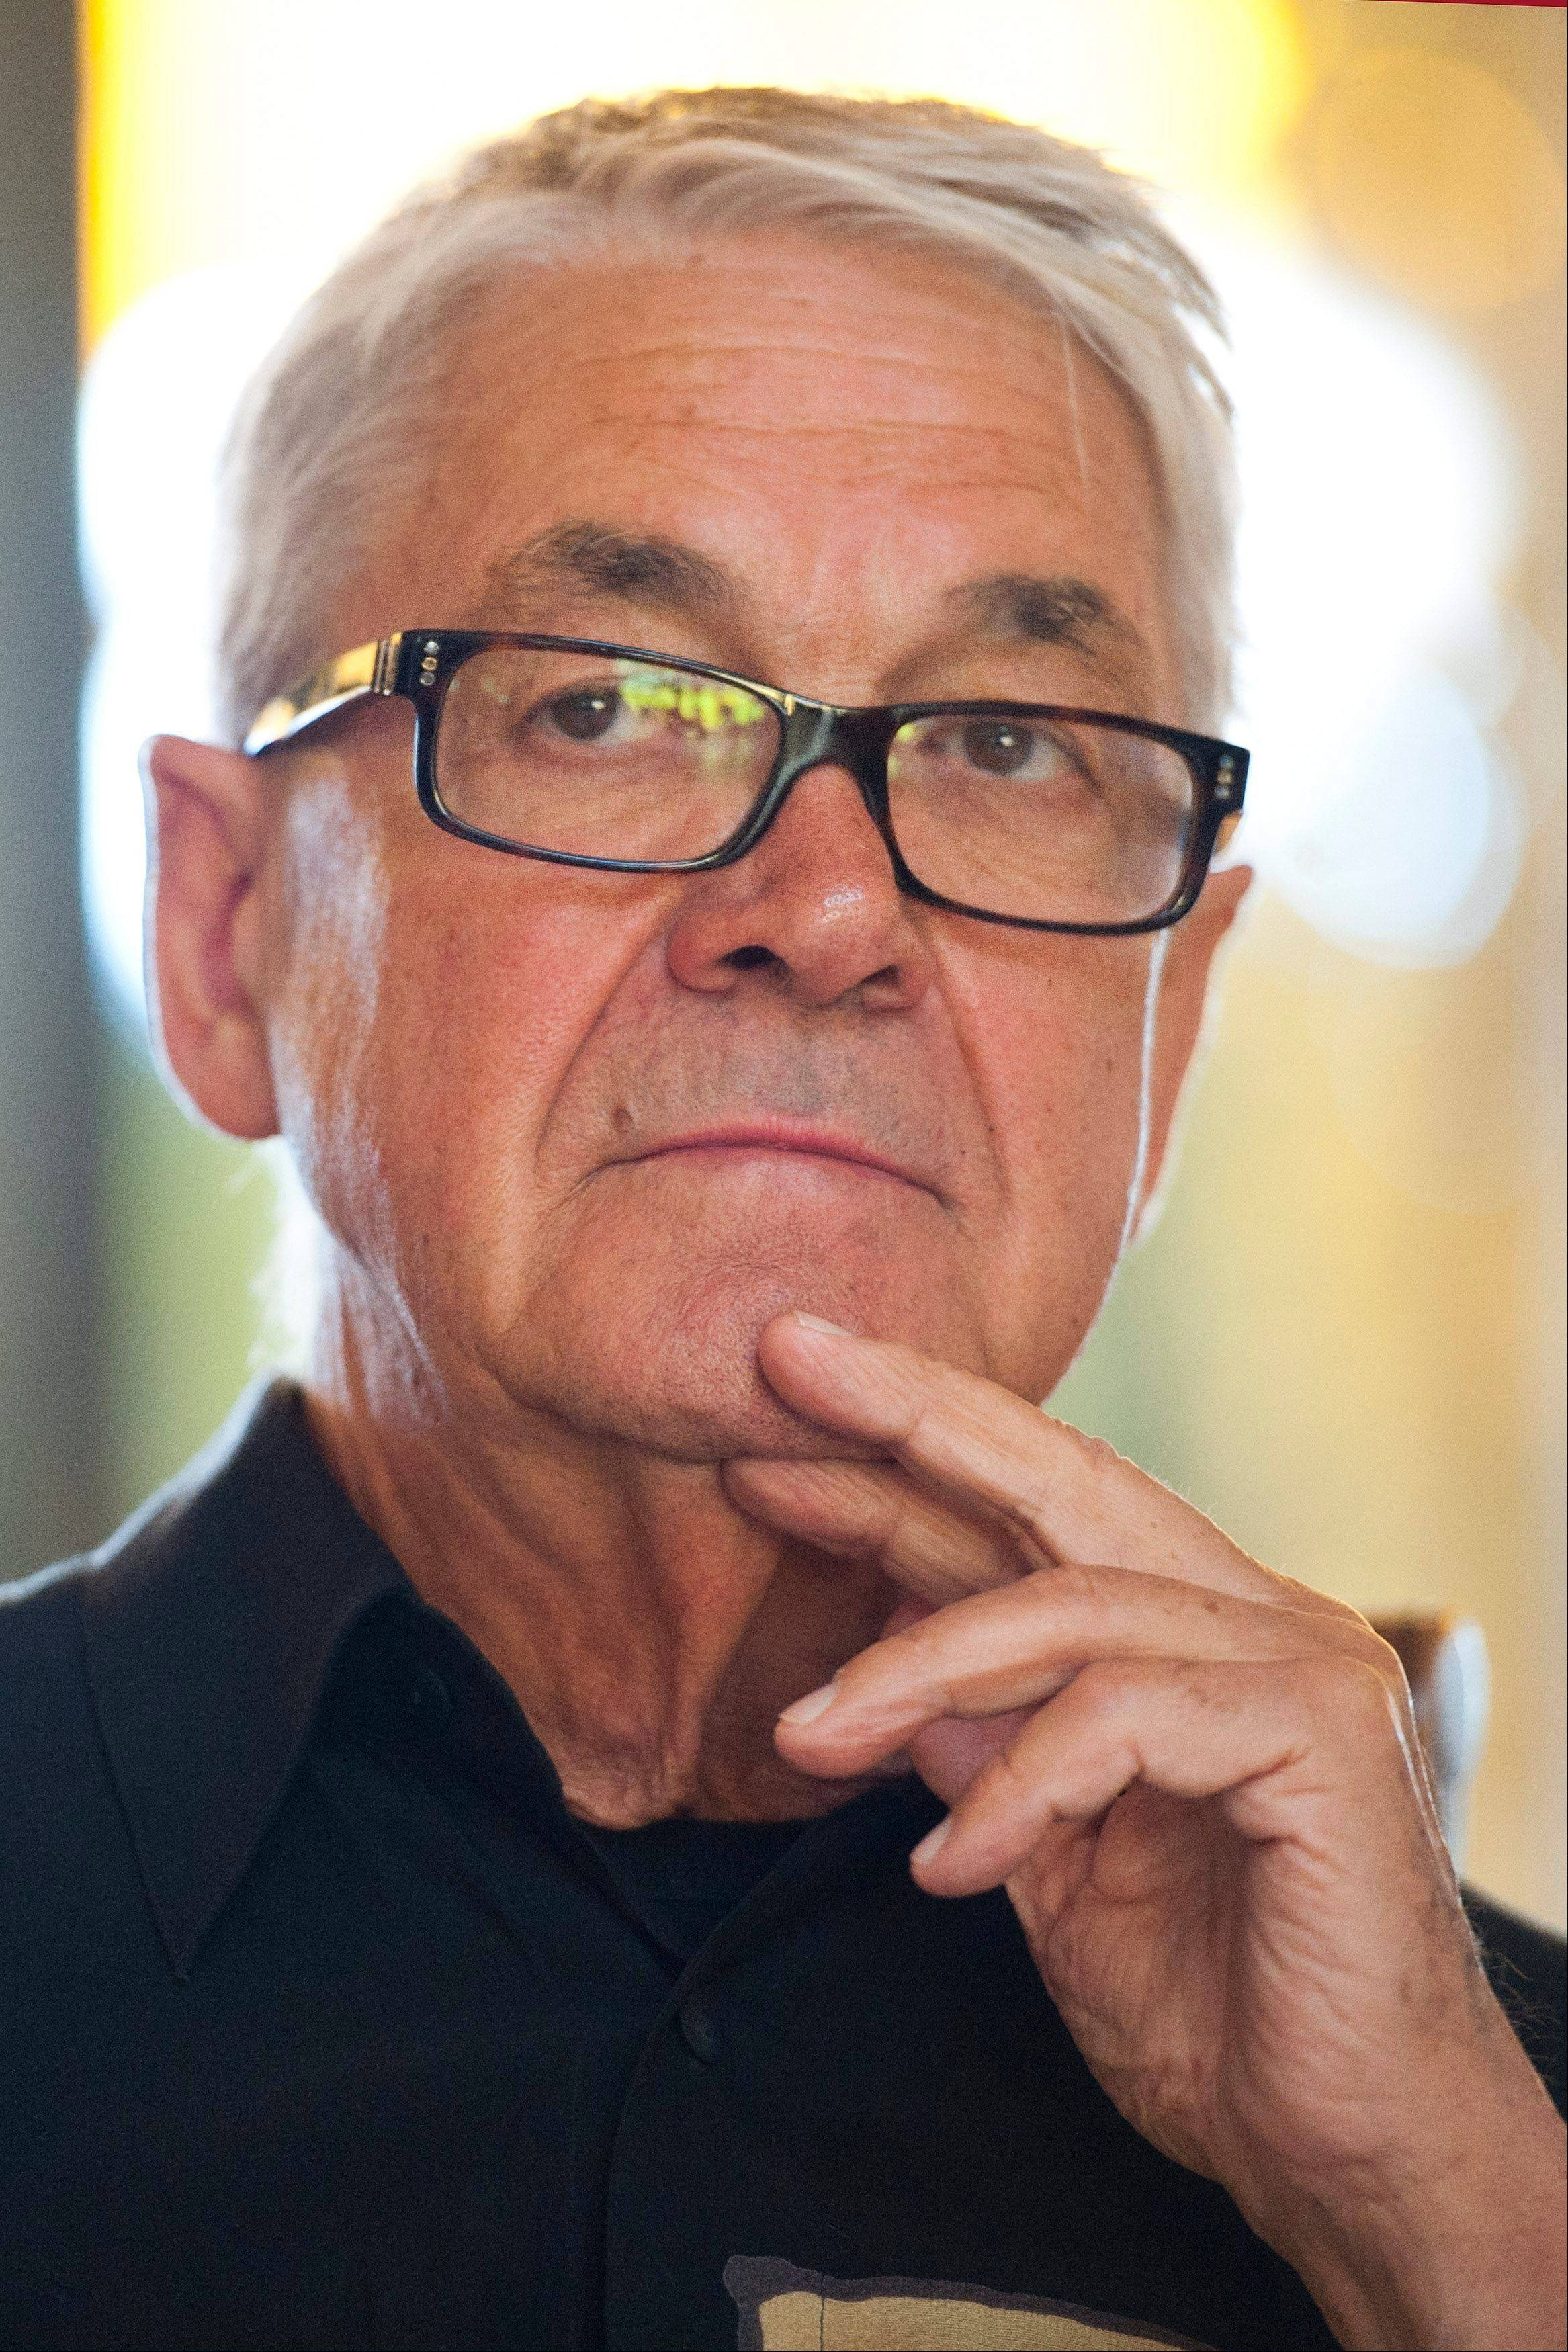 Swiss Claude Nobs, founder and director of the Montreux Jazz Festival.